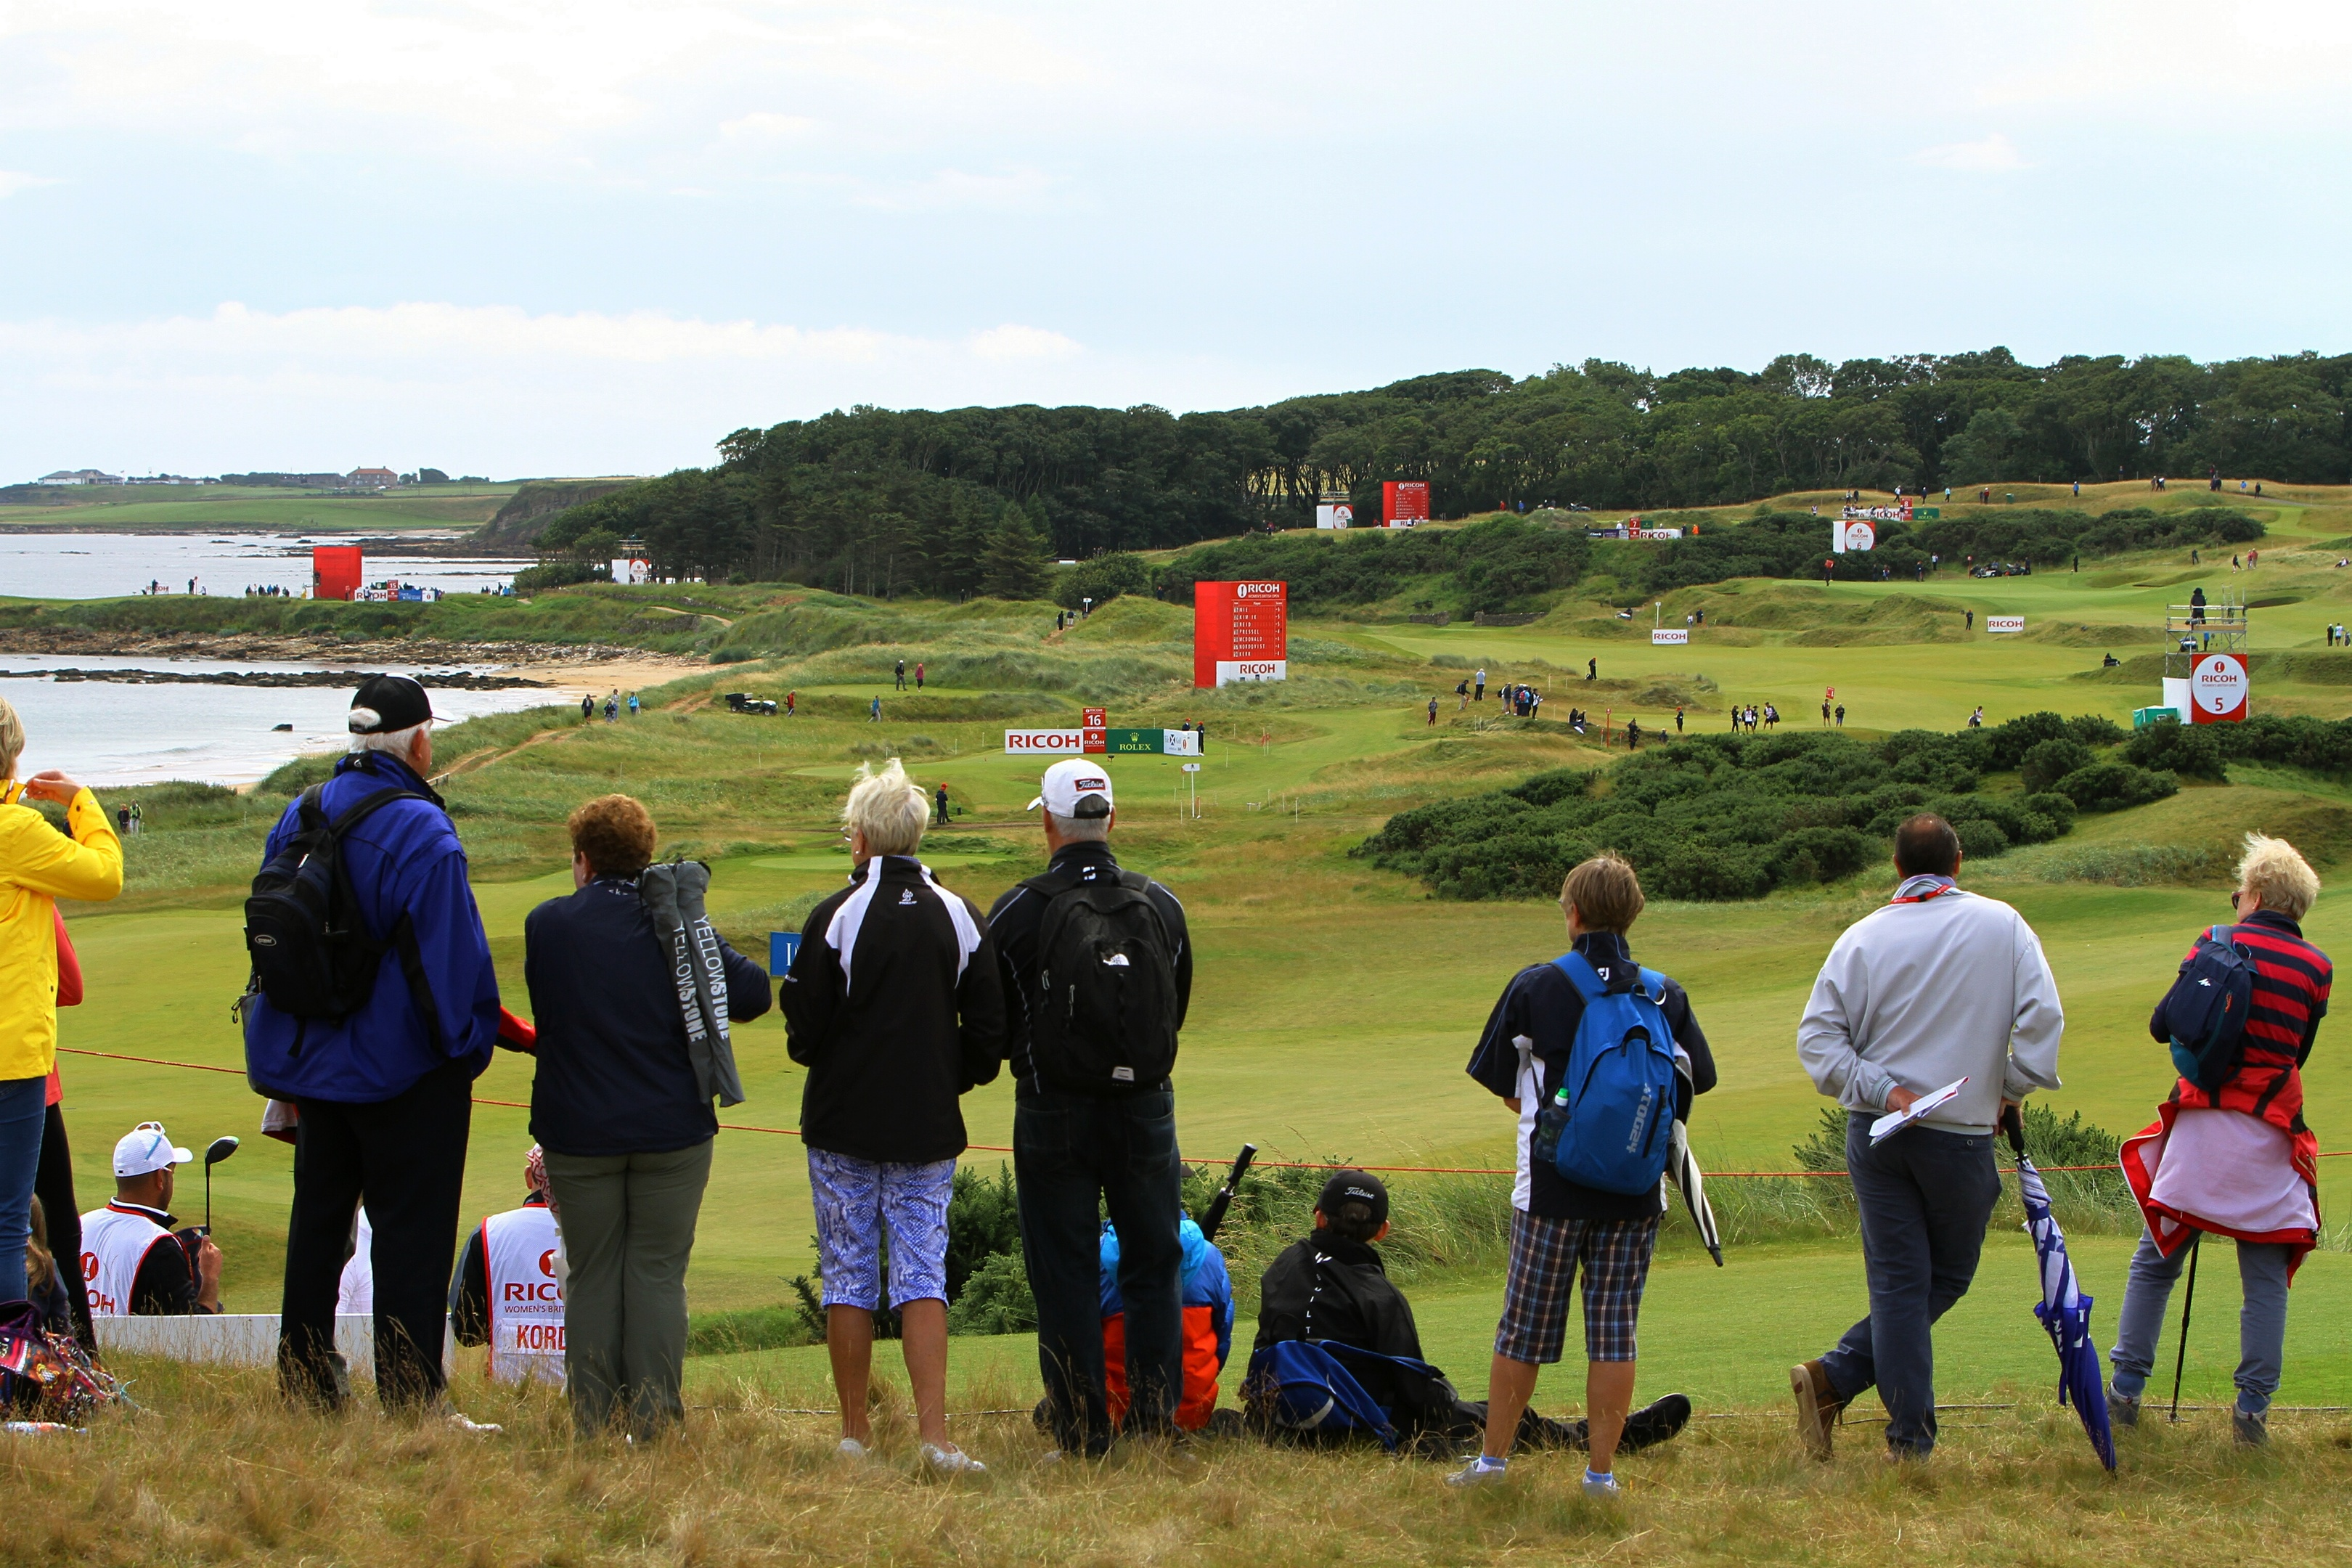 Women's Open at Kingsbarns saw beach car park shut